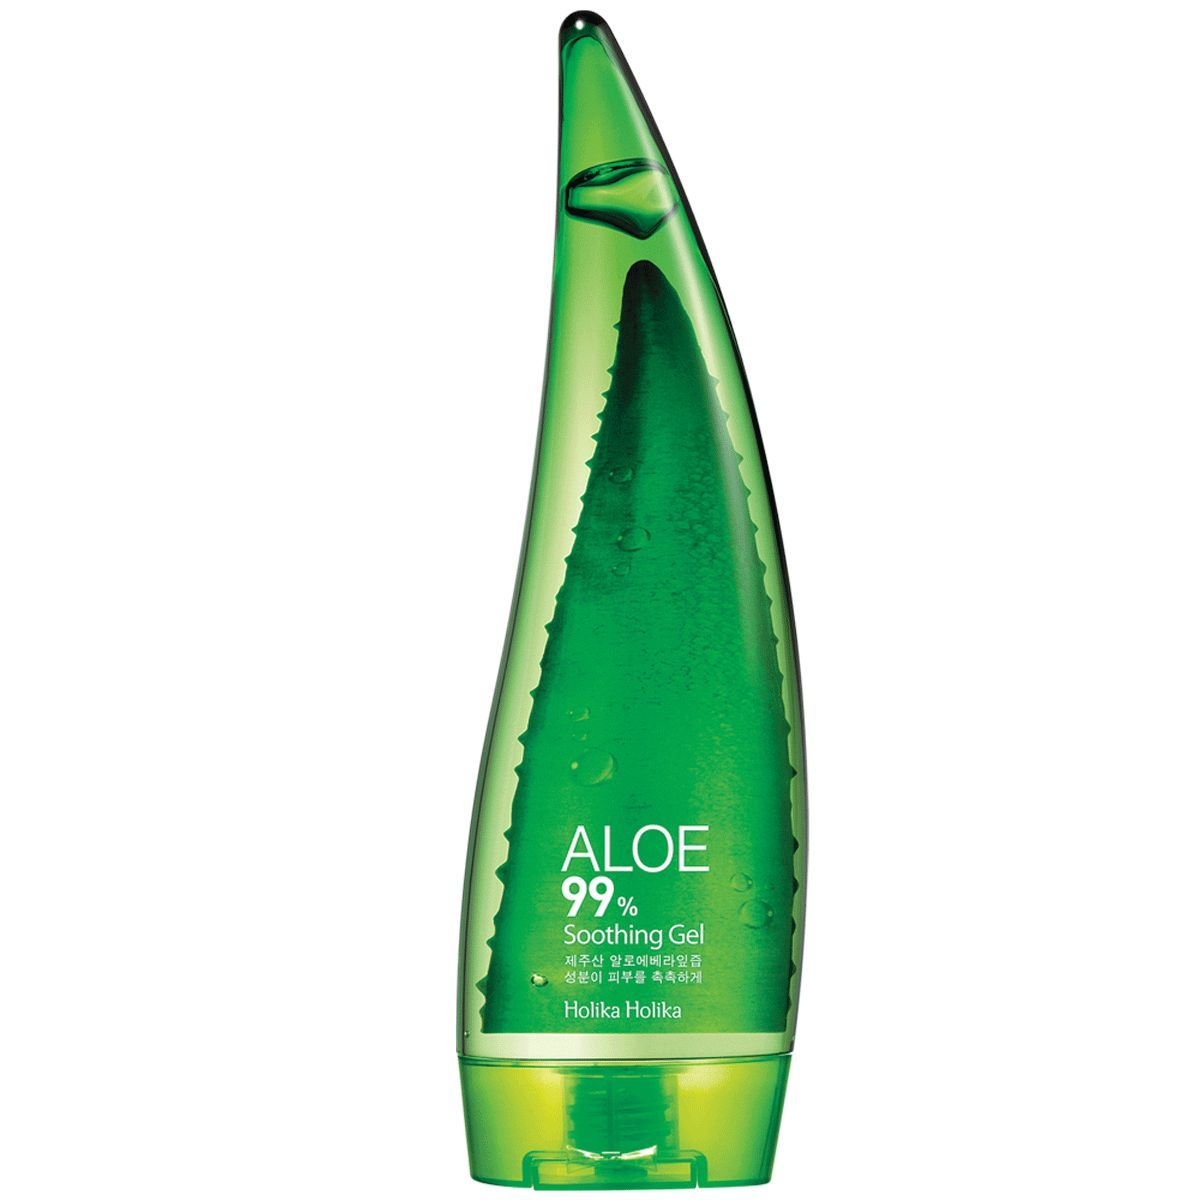 Health & Beauty > Personal Care > Cosmetics > Skin Care > Lotion & Moisturizer - Aloe 99% Soothing Gel Żel Pielęgnujący 250 Ml